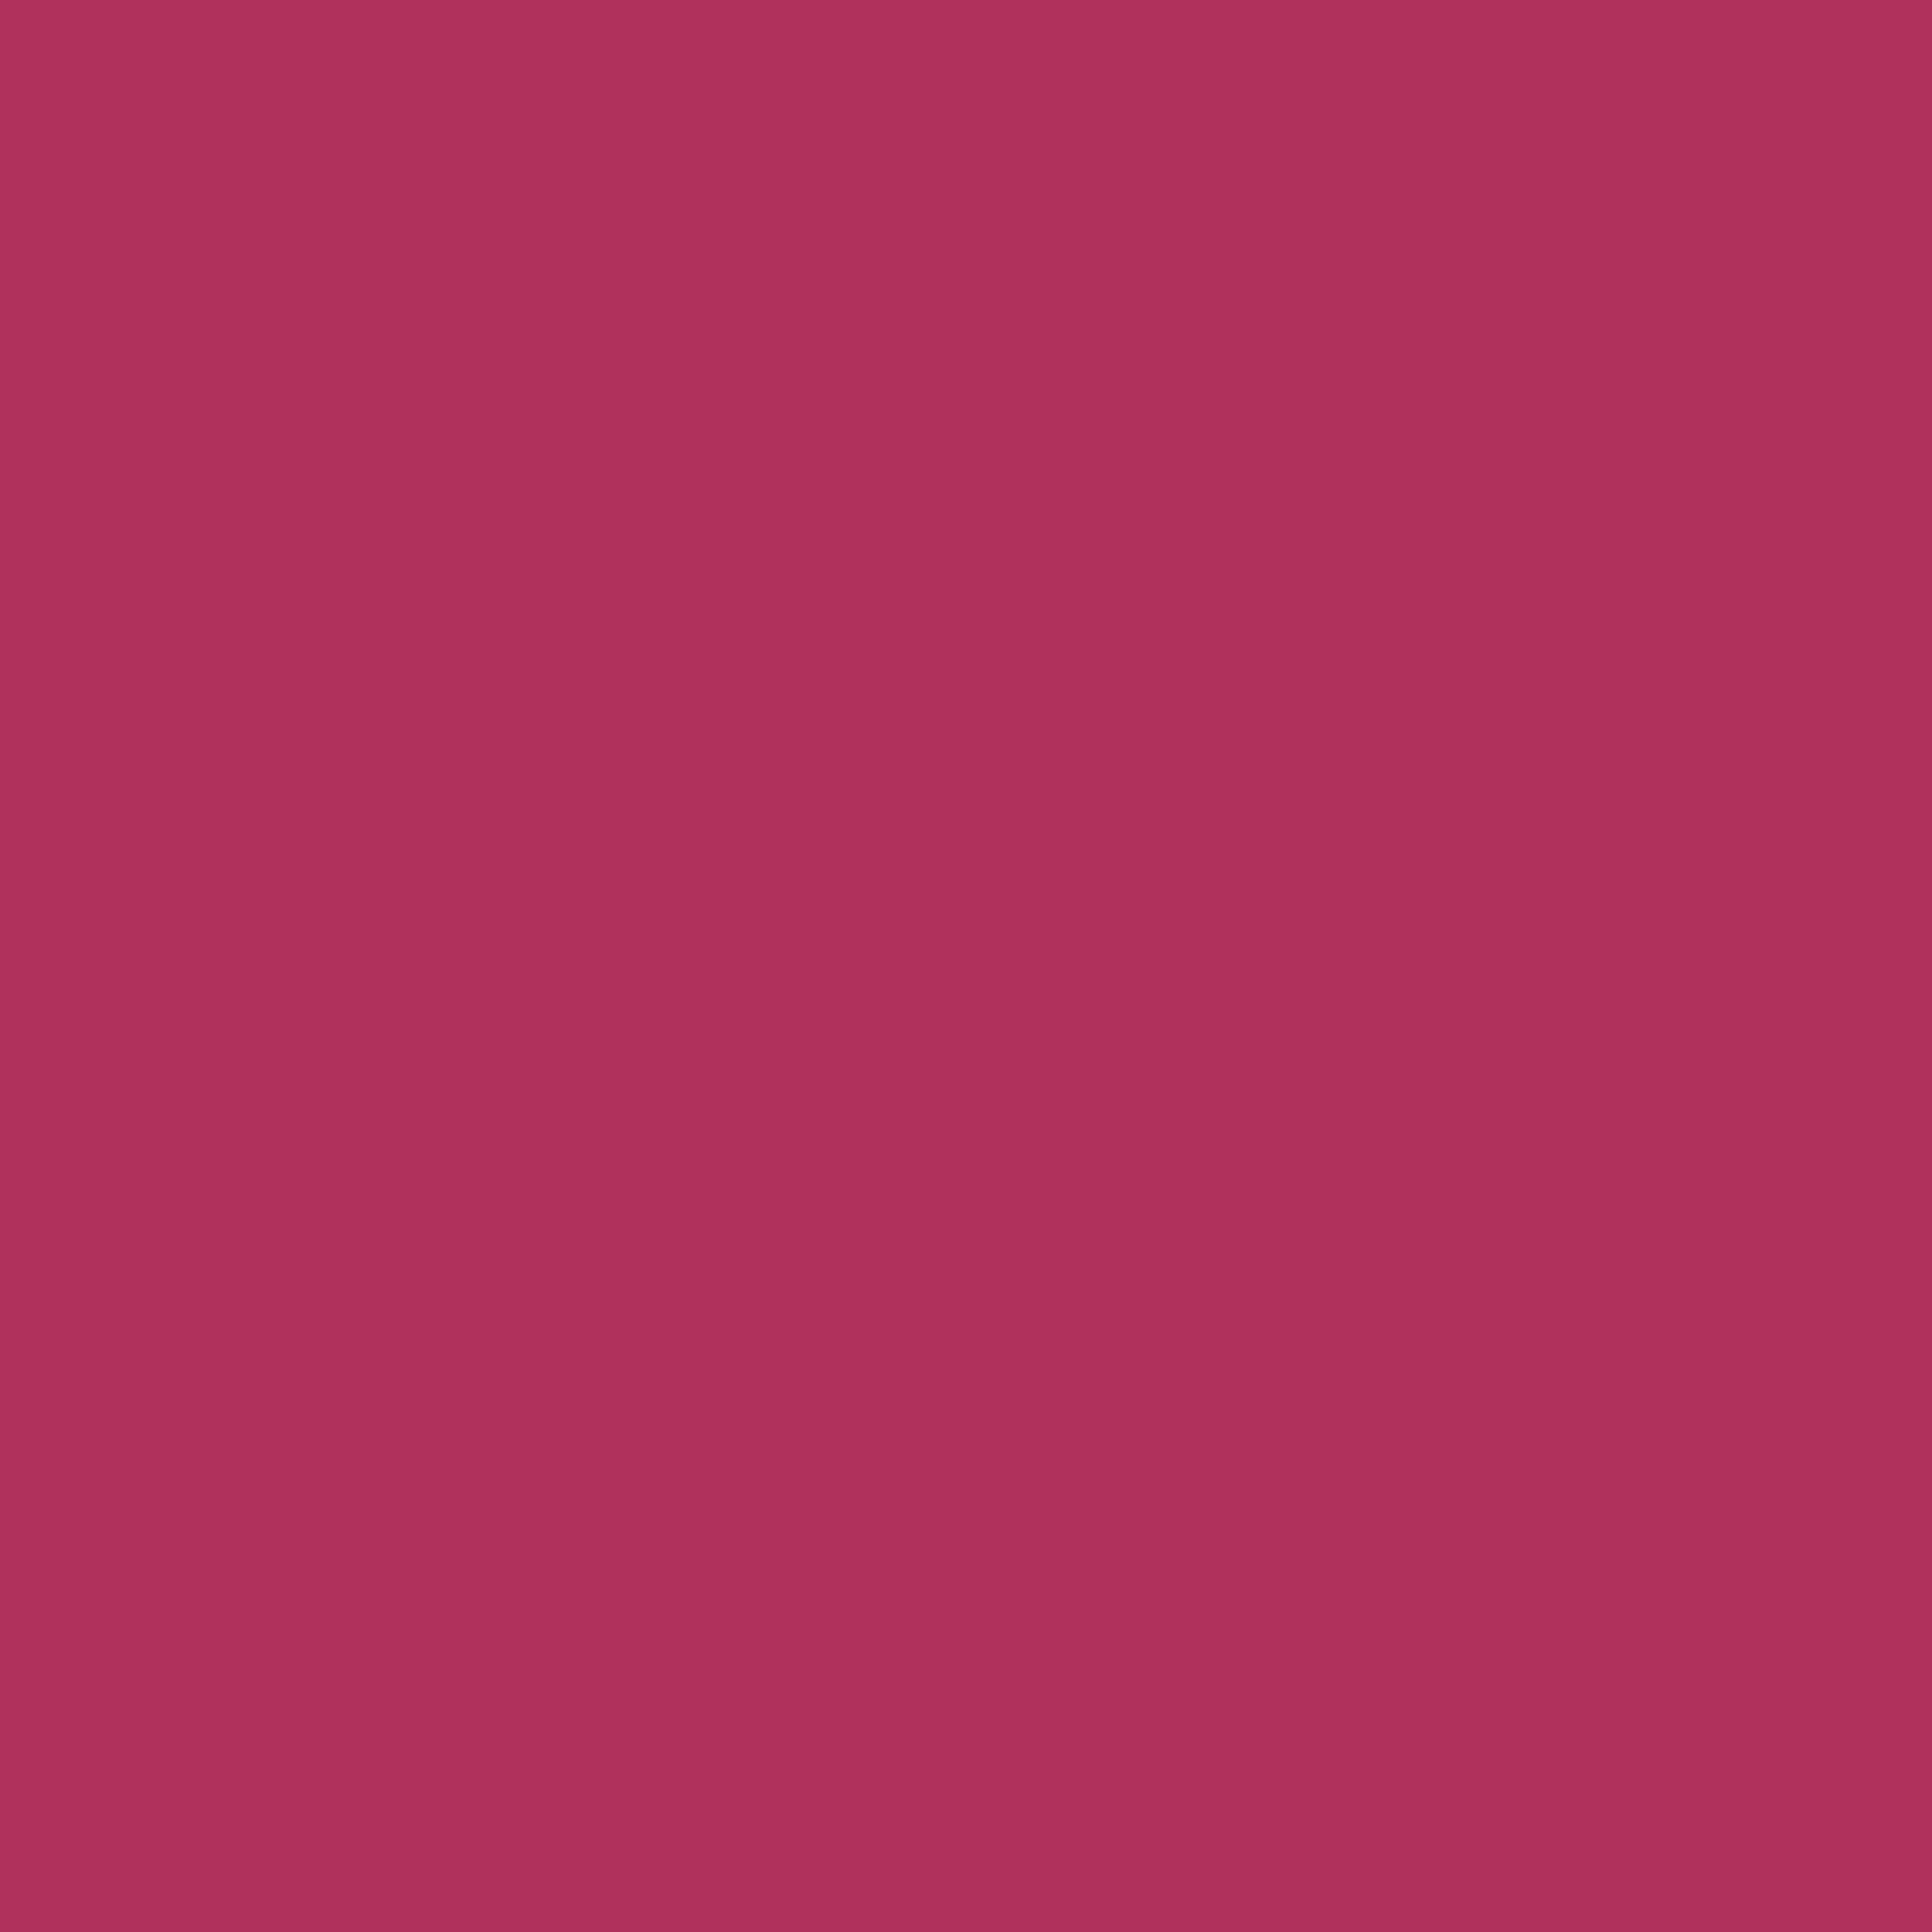 2732x2732 Rich Maroon Solid Color Background